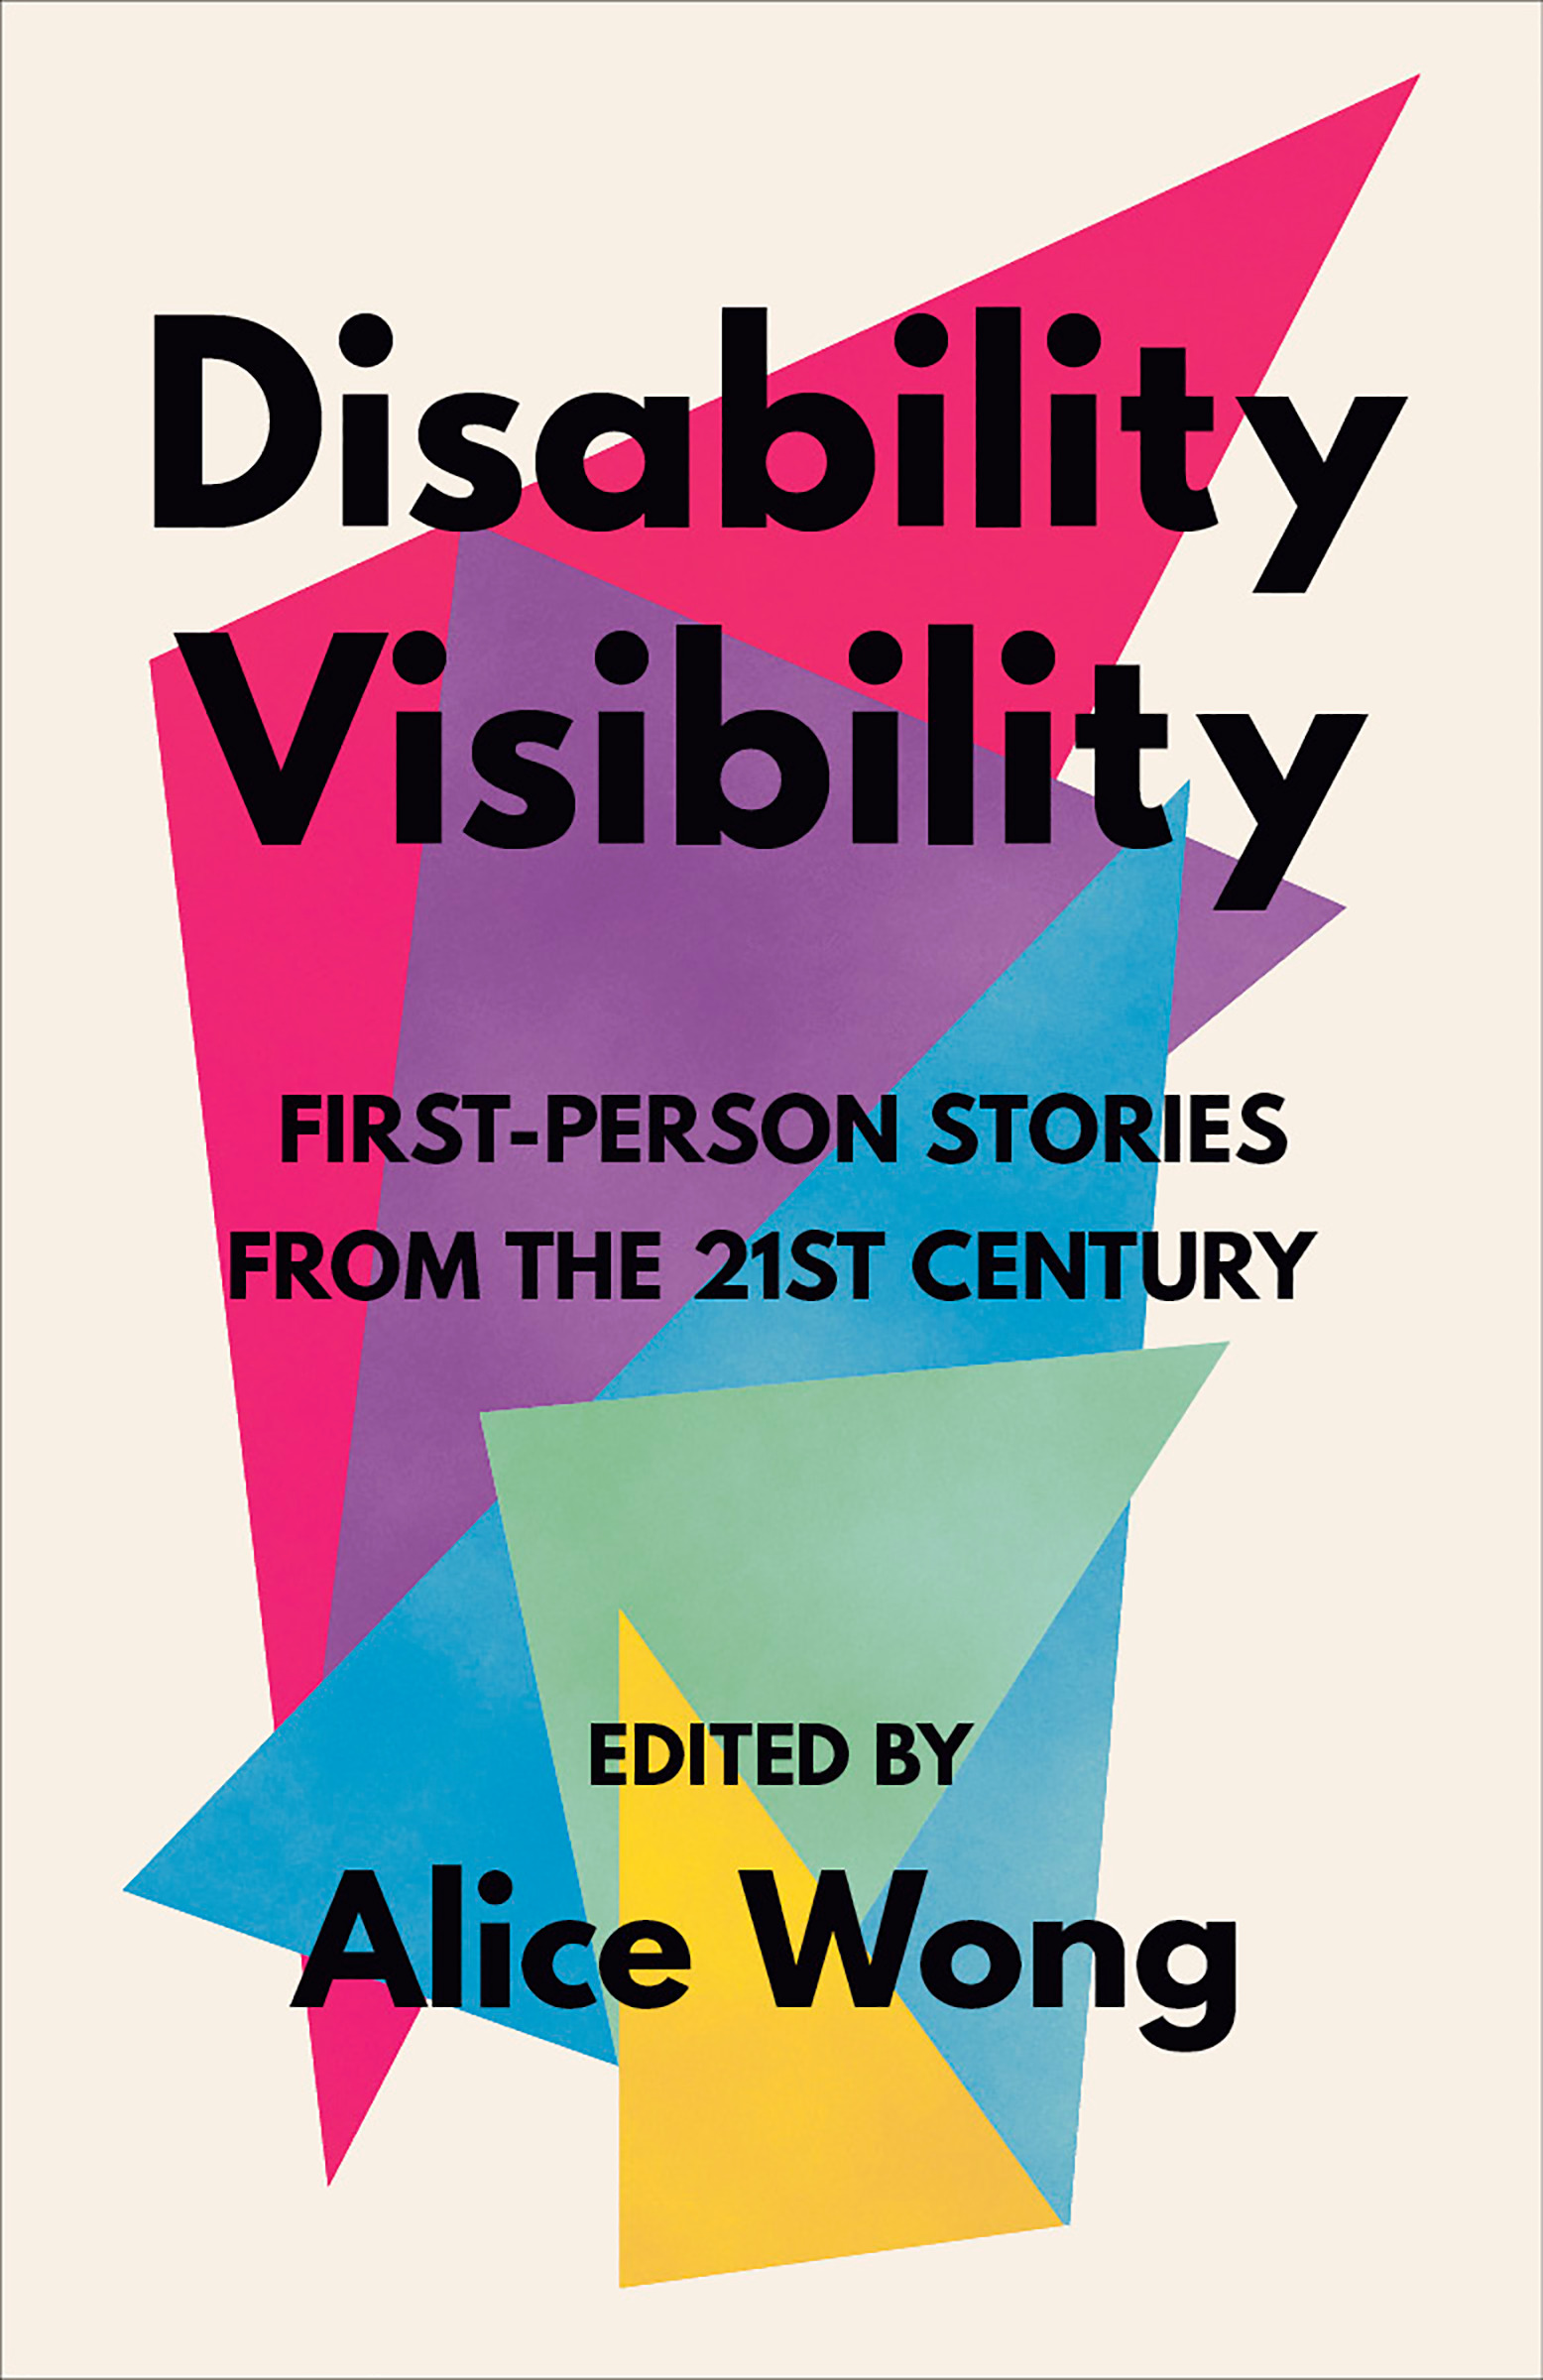 Book Cover of 'Disability Visibility'. 5 overlapping triangles in different colours with the book title and authors name in black in front